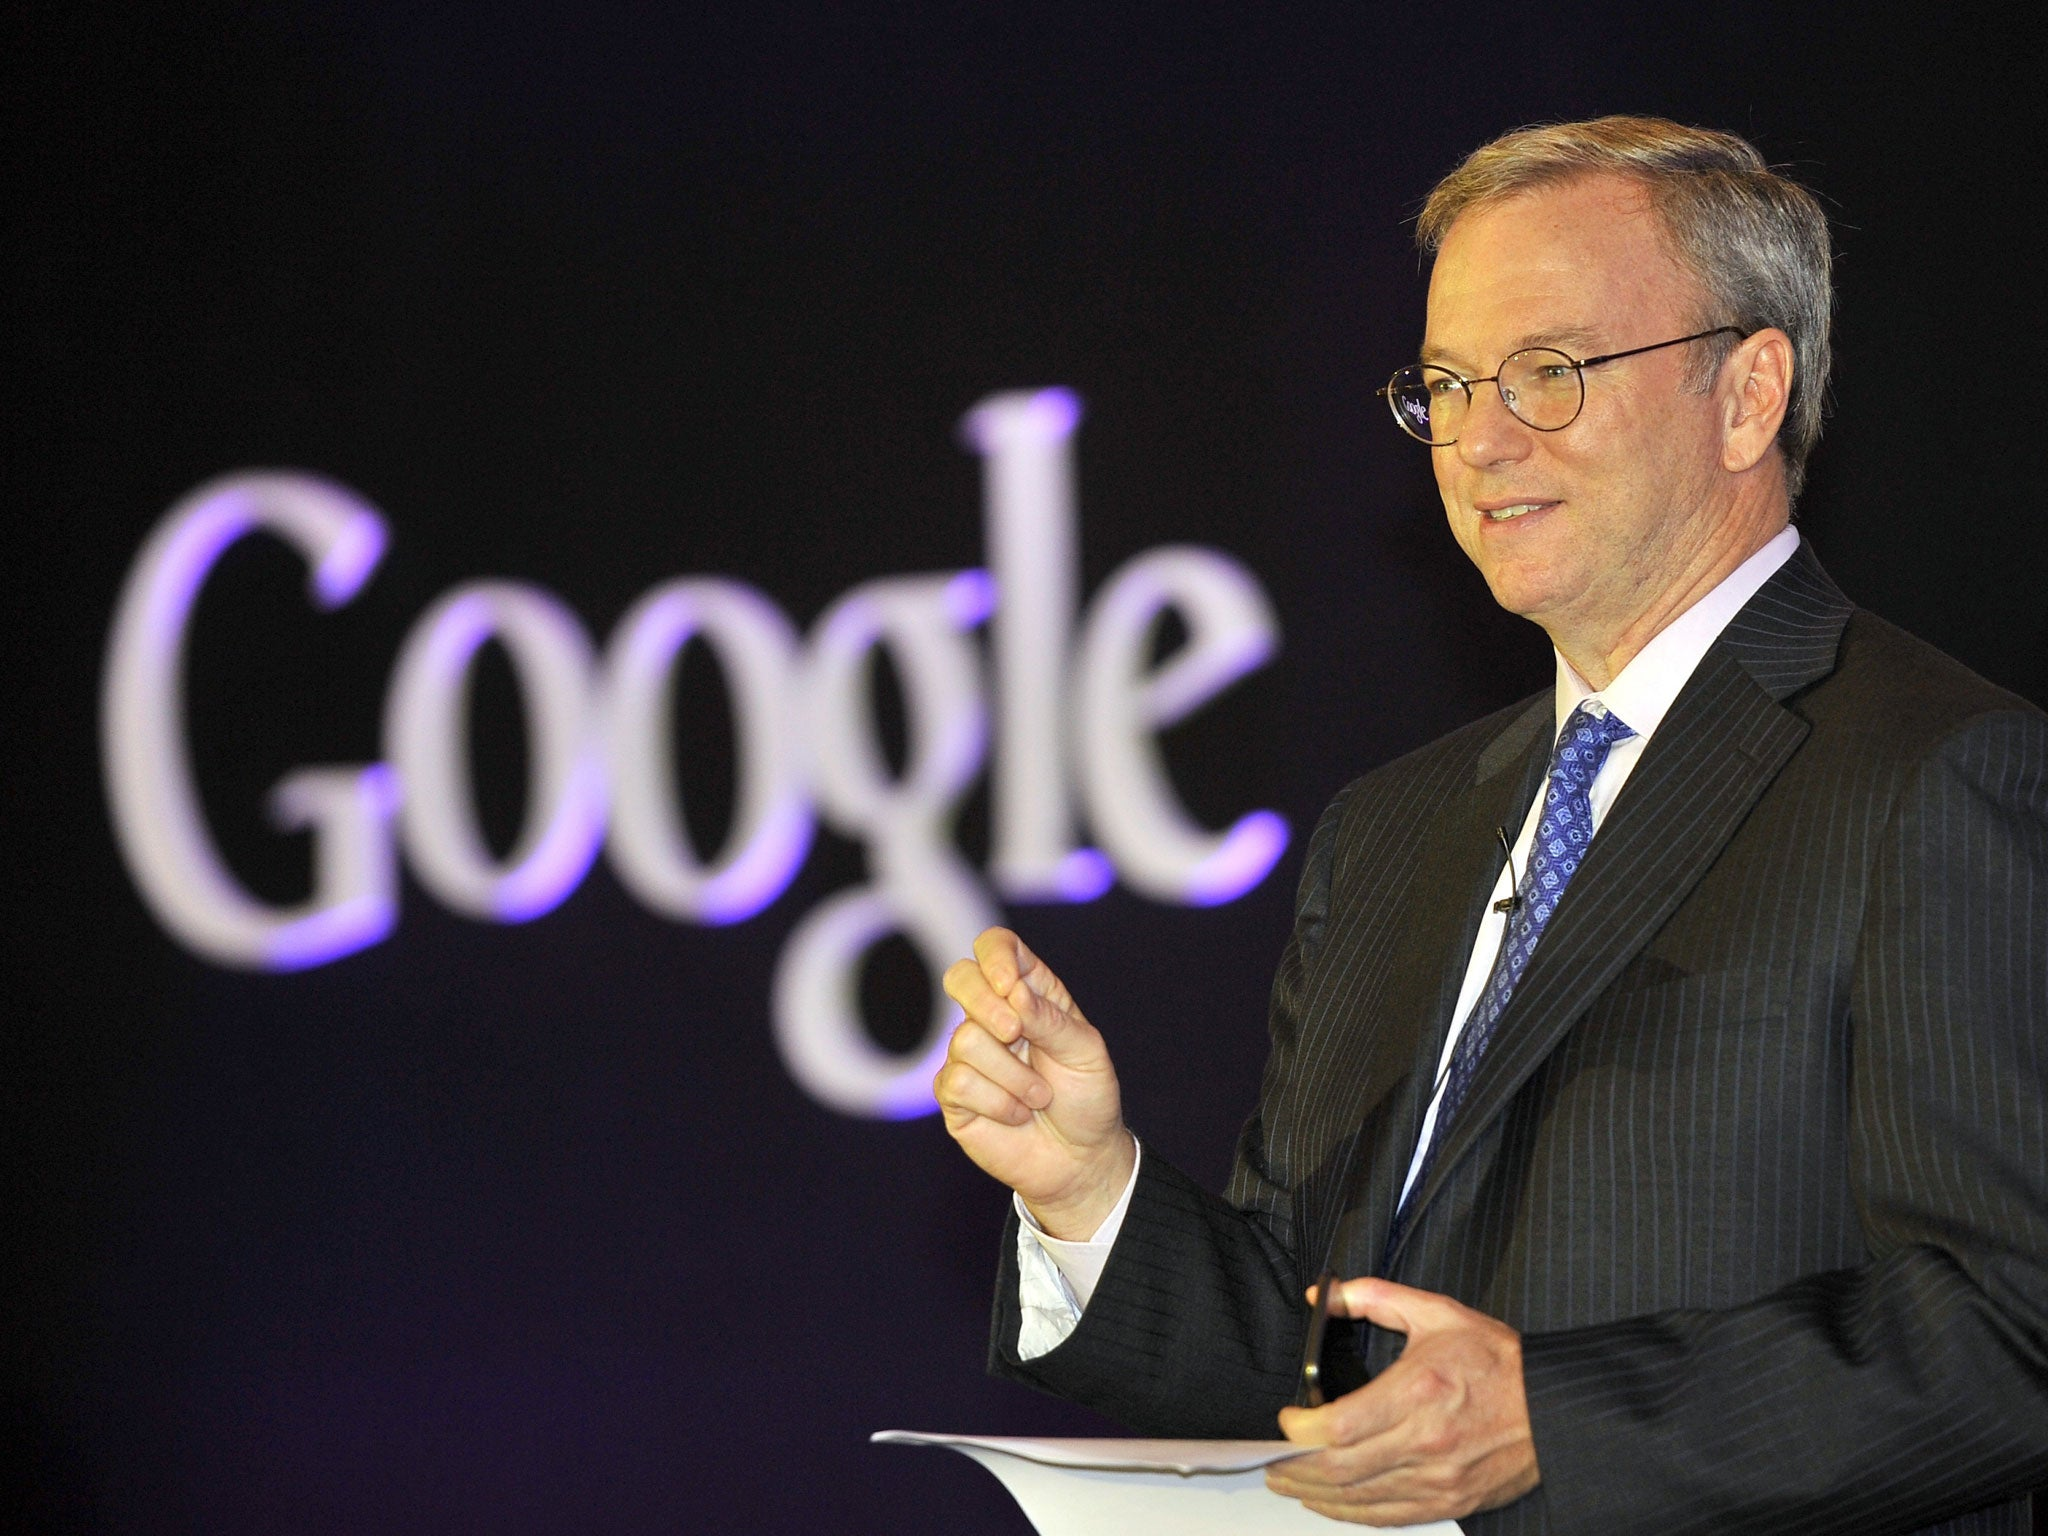 The moral case on tax avoidance is overwhelming - and we all know Google wants to do the right thing